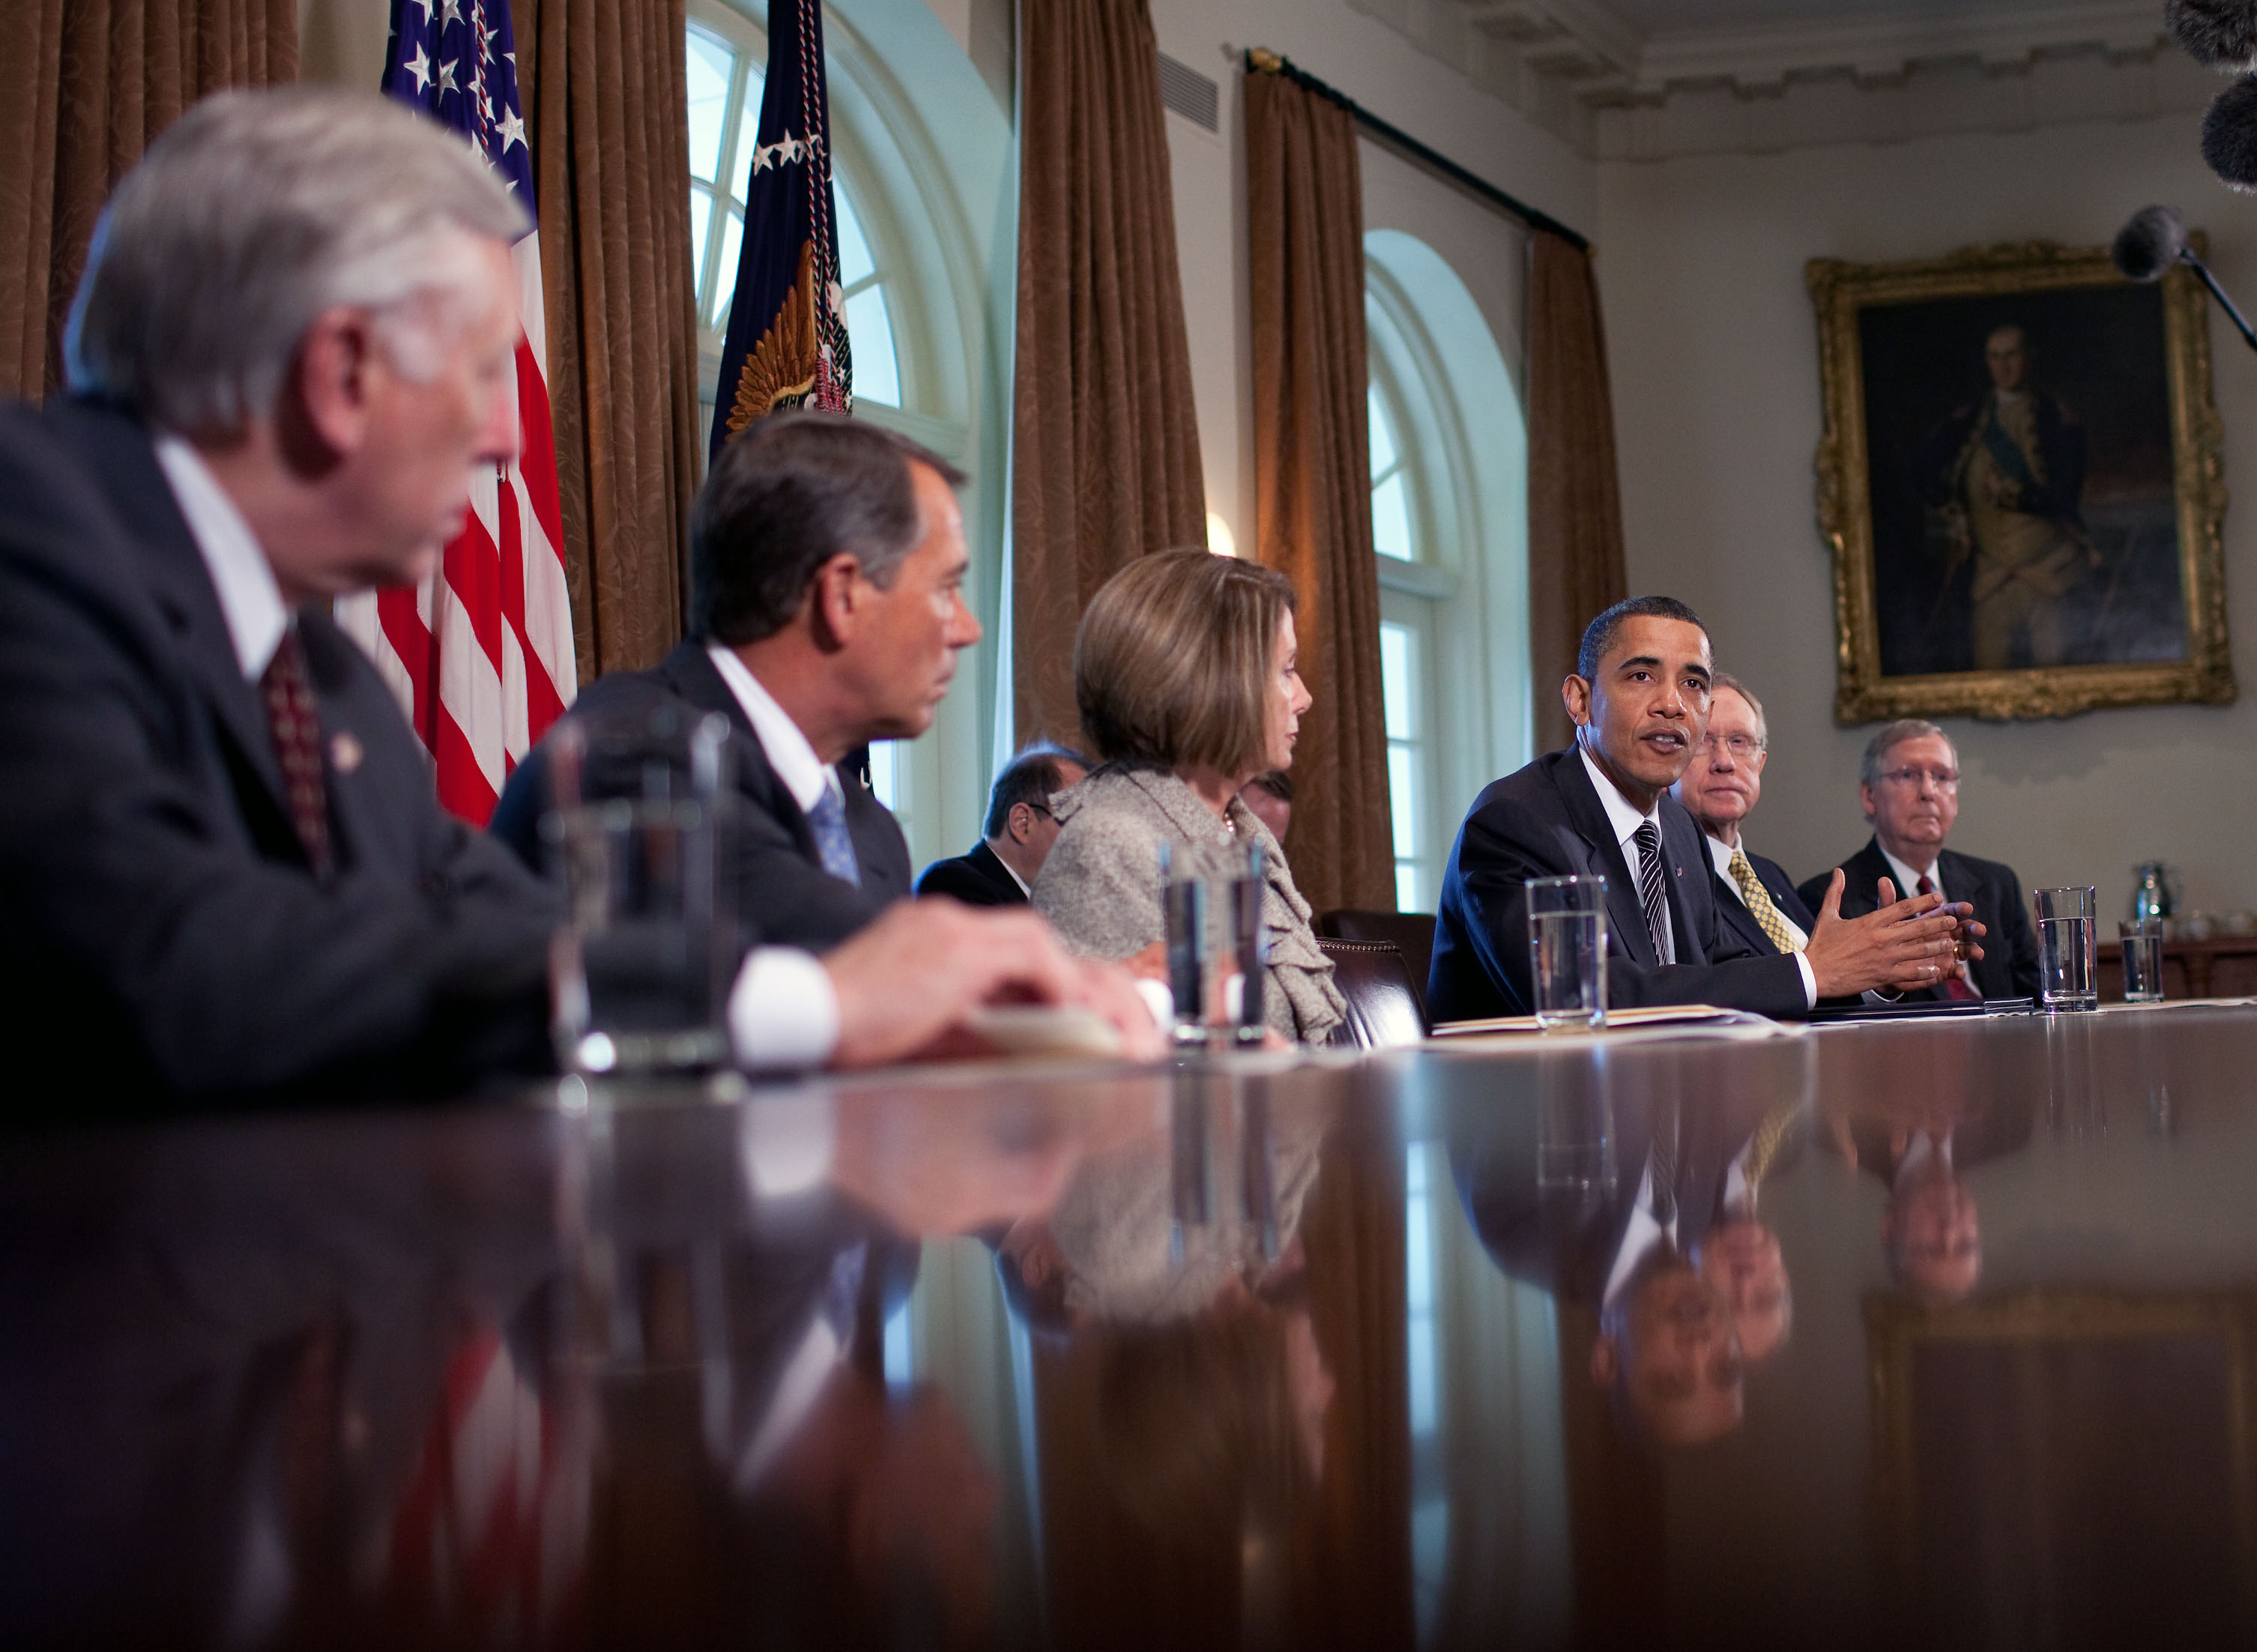 President Barack Obama Discusses Wall Street Reform